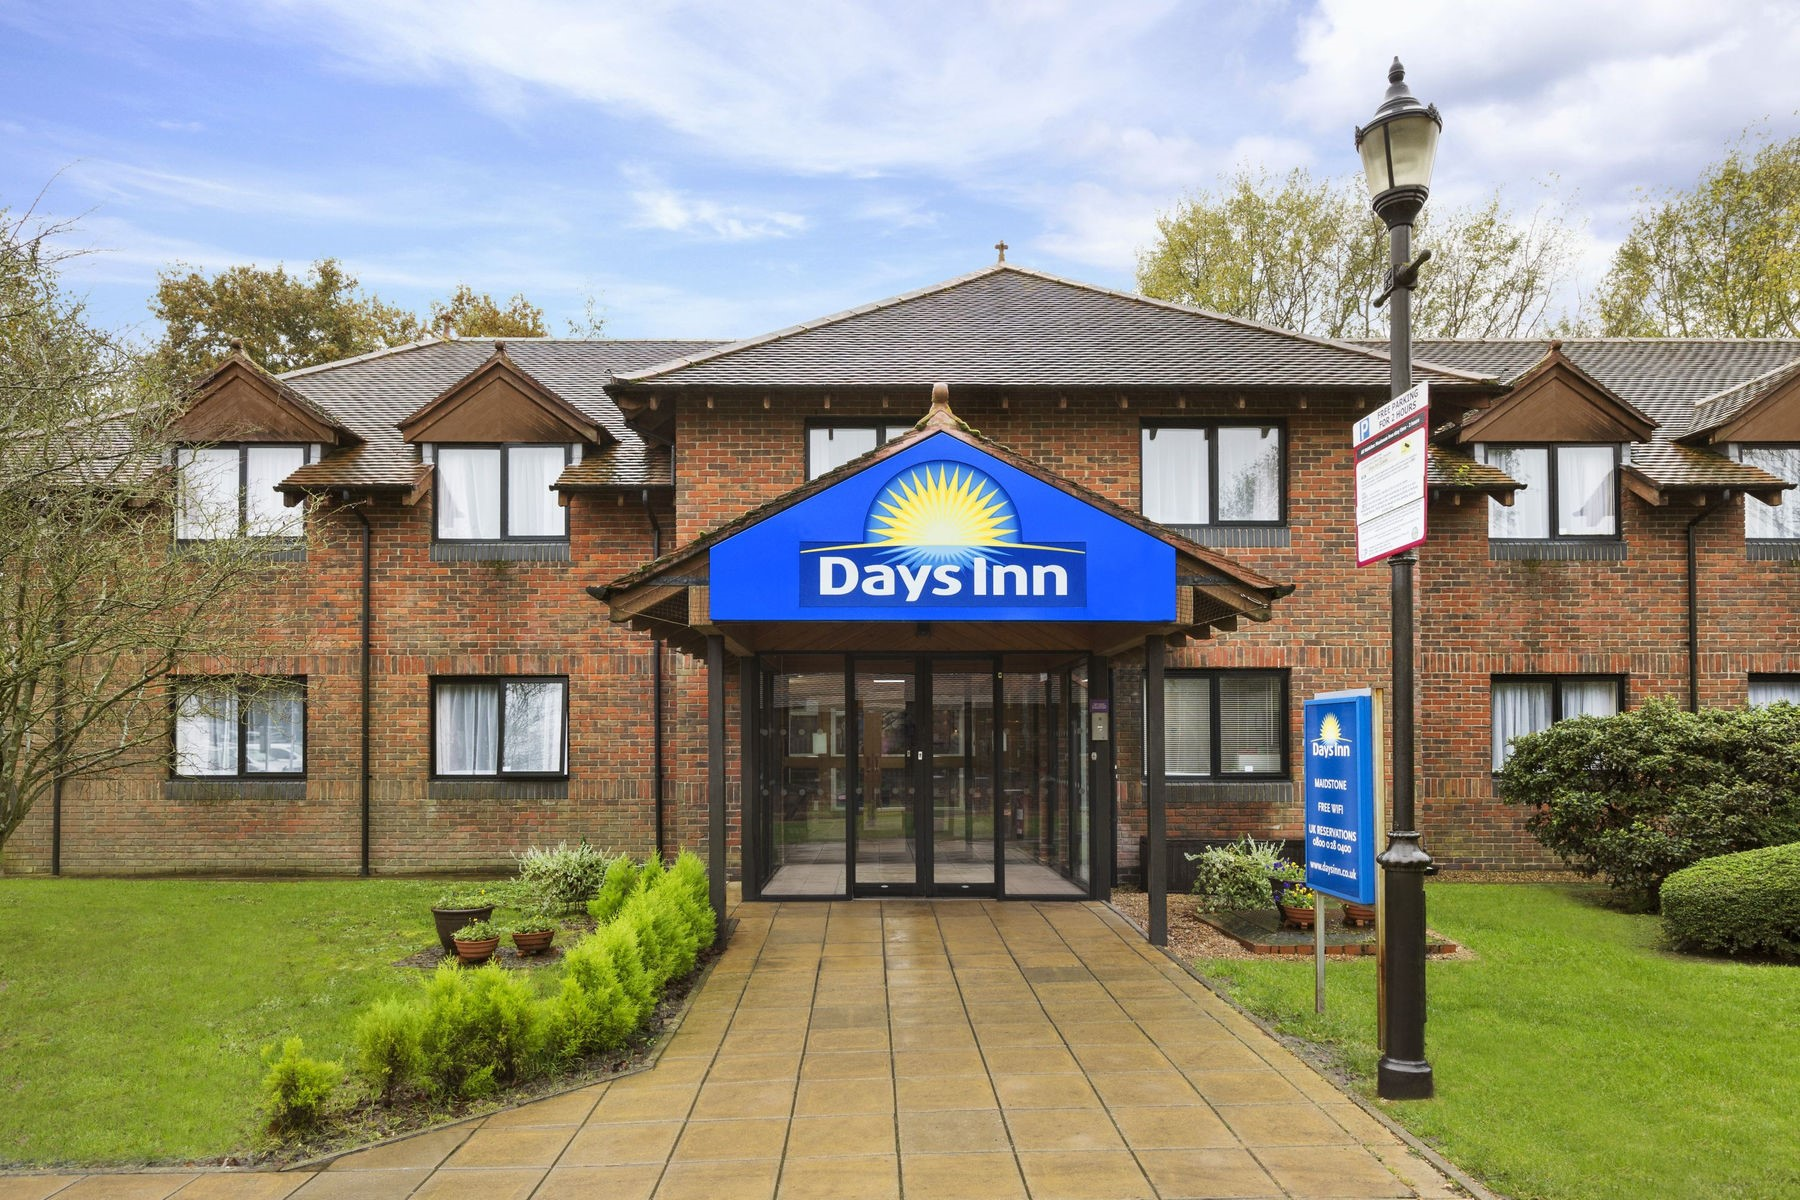 Please note: The weekly prices quoted above are for Official Long Stay 4 car park and Days Inn with parking. These are accurate at the time of writing but are always subject to change according to availability on the dates you require and price fluctuations throughout the year.